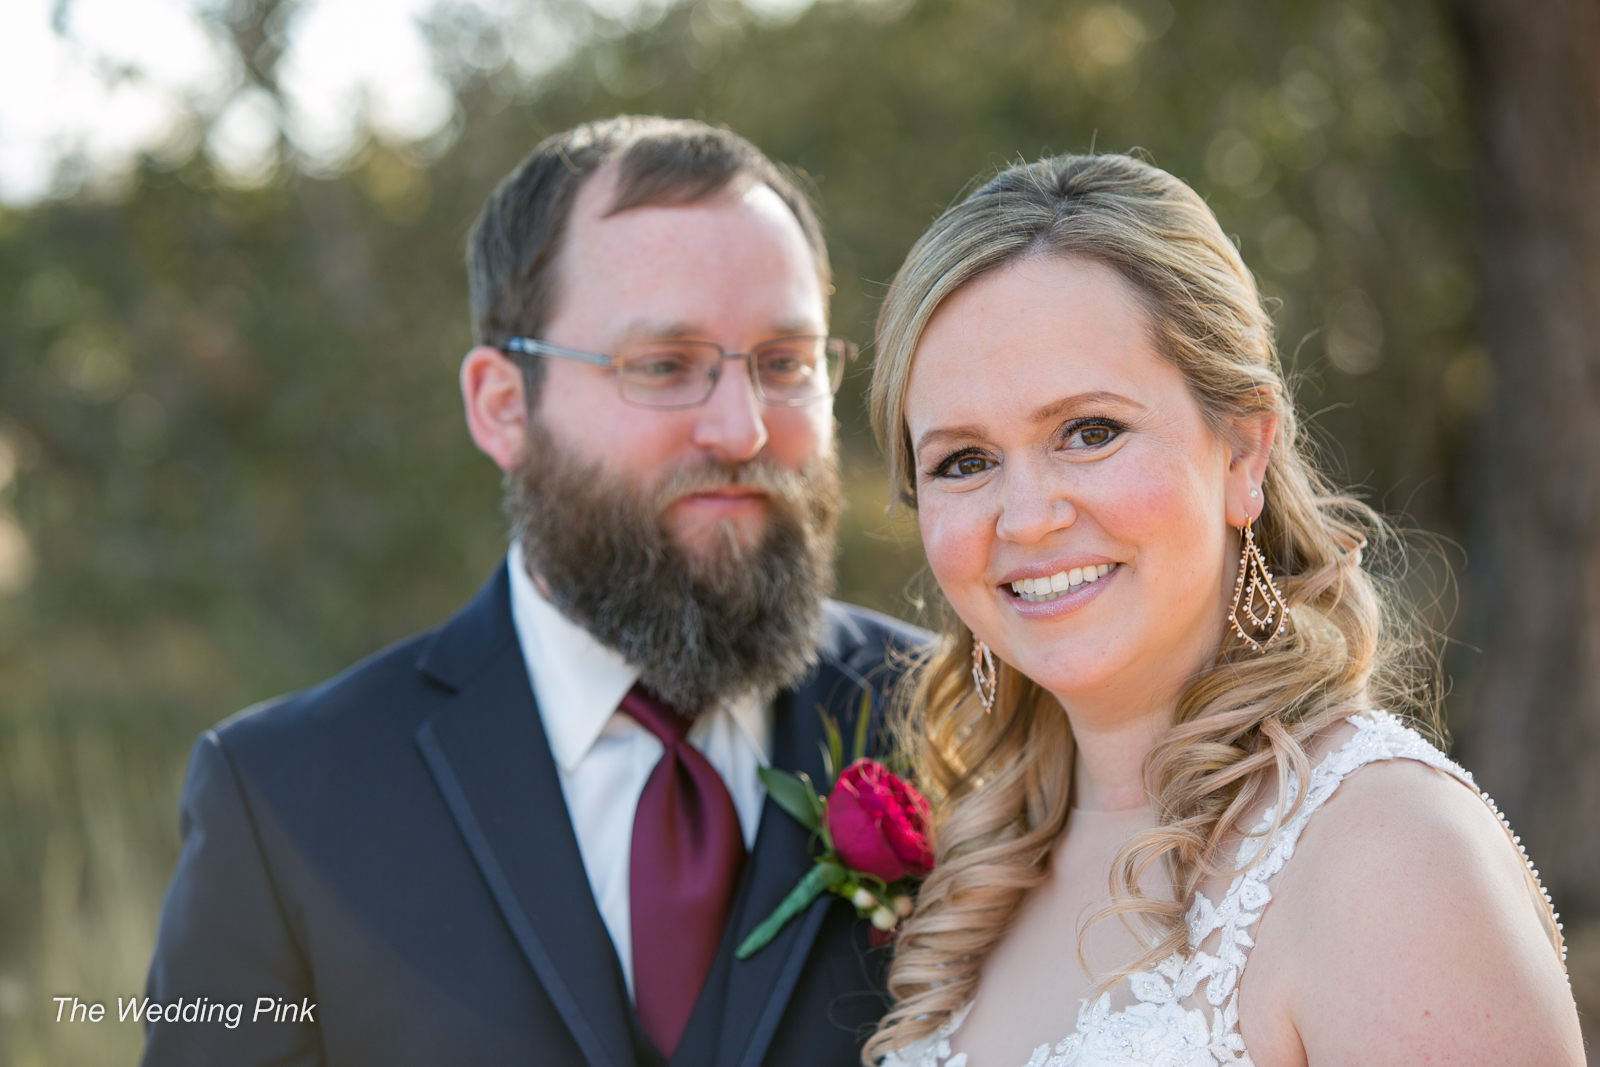 Liz and Lee, the recipients of The Wedding Pink 2018